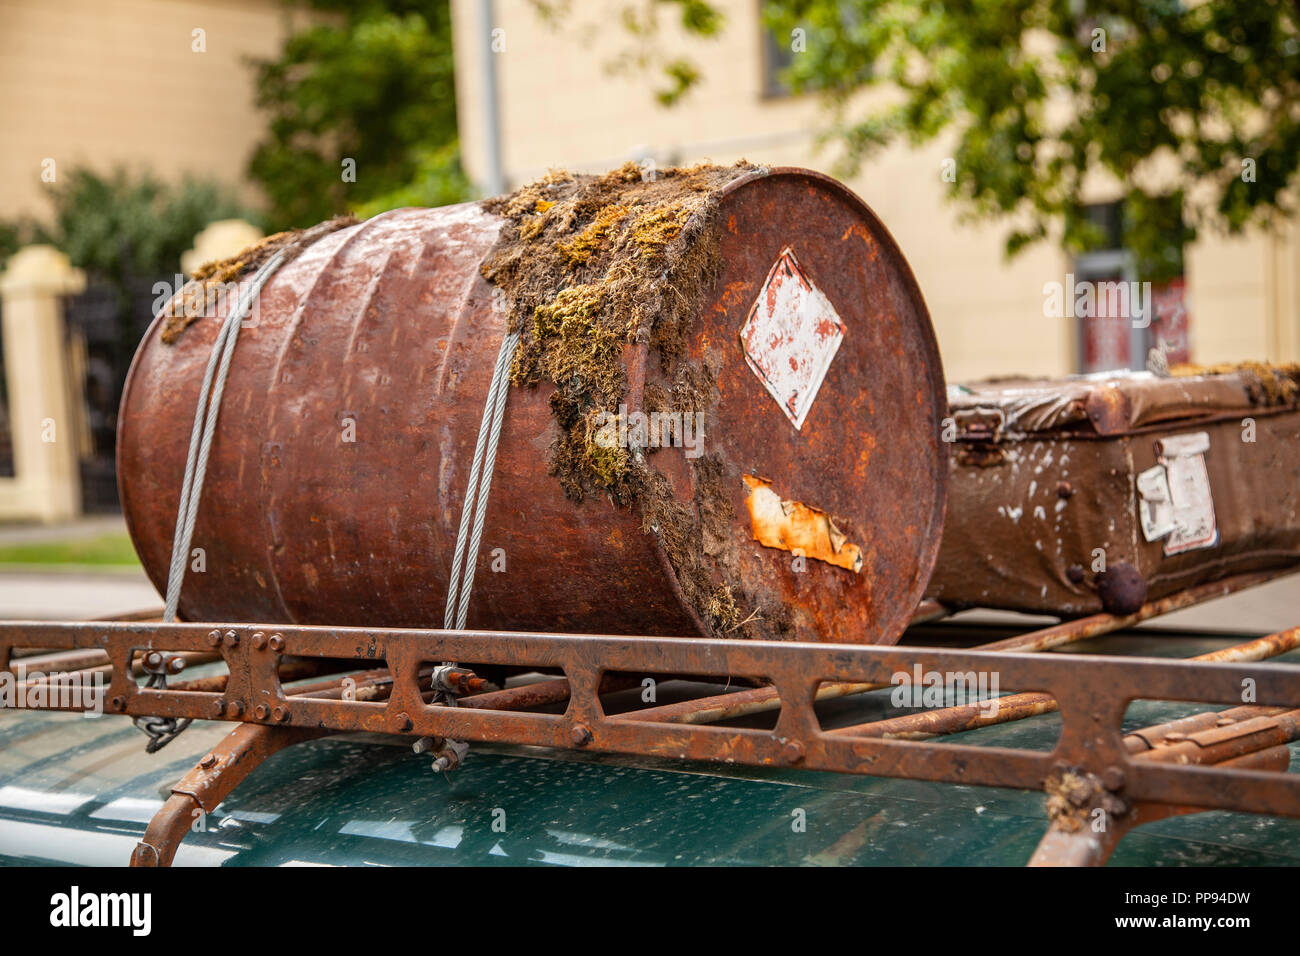 Rusted barrel in the trunk of the car - Stock Image